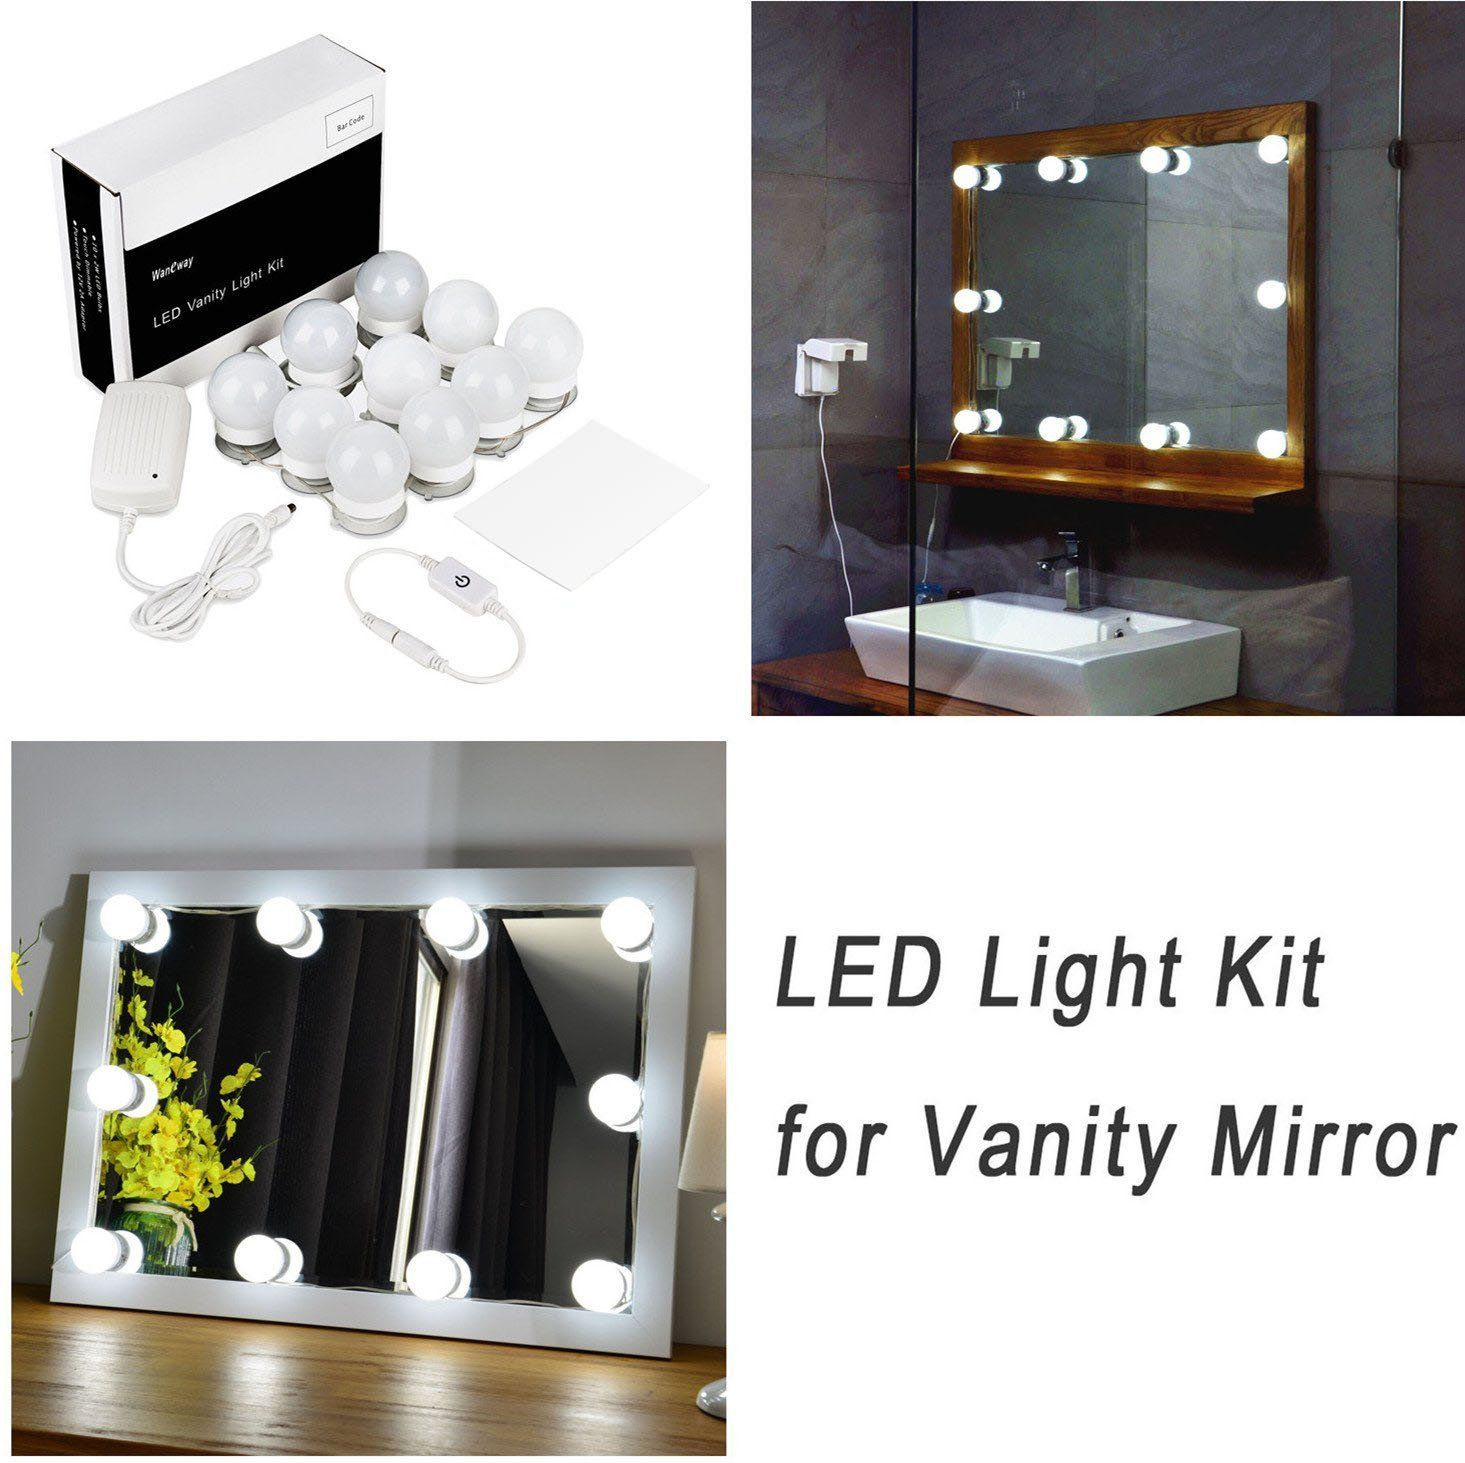 Hollywood style led vanity mirror lights kit for makeup dressing hollywood style led vanity mirror lights kit for makeup dressing table vanity set mirrors with dimmer aloadofball